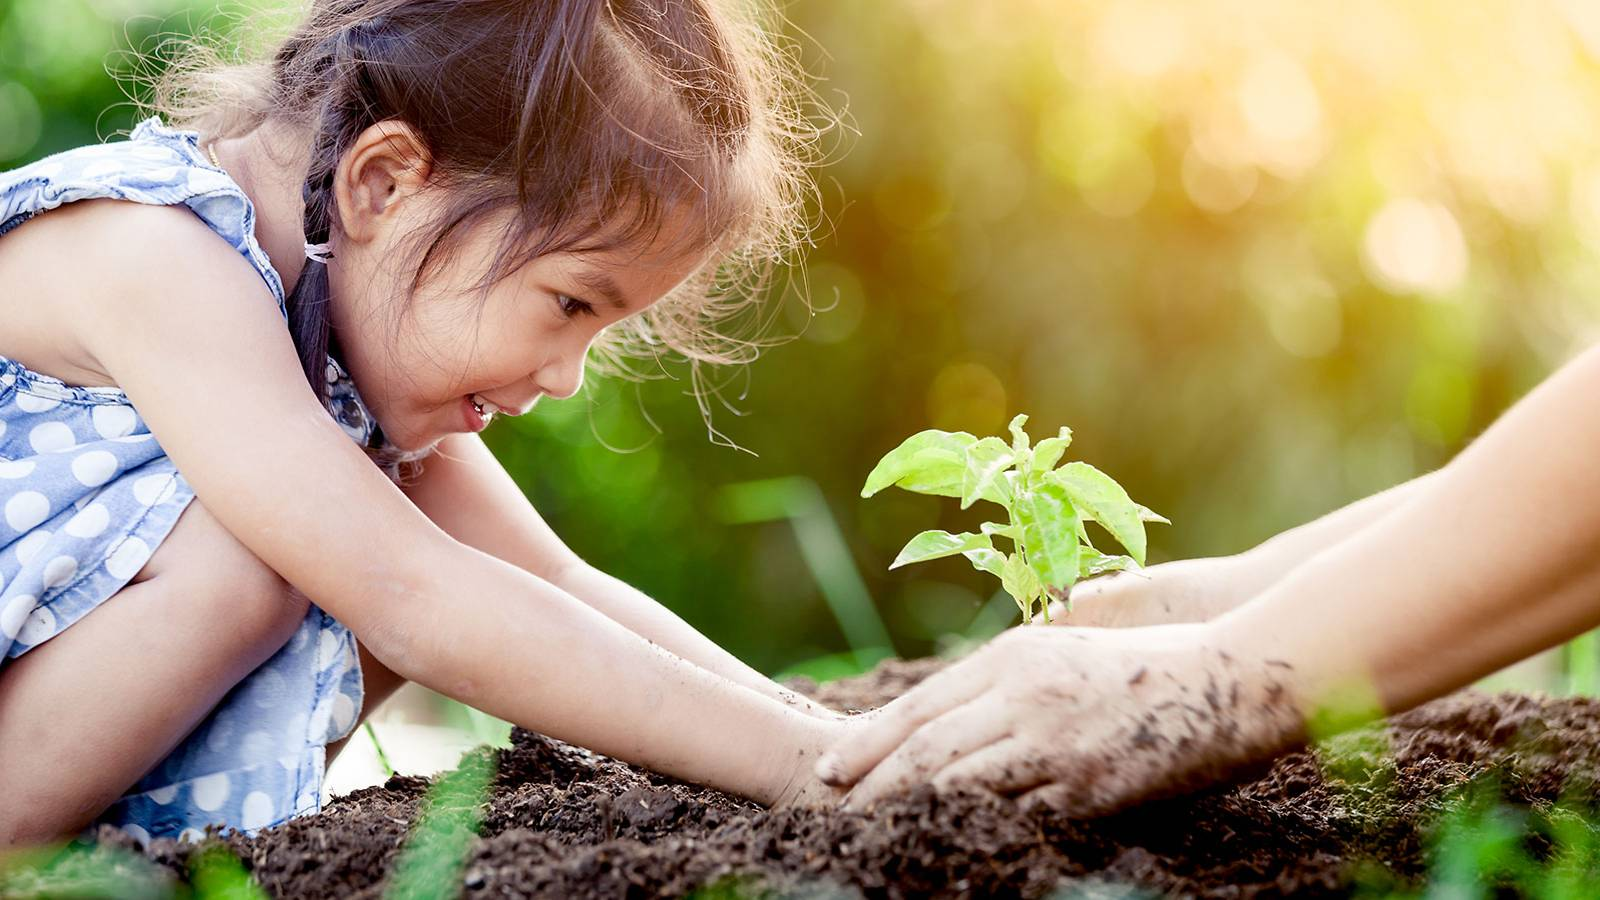 Tots-6-easy-tips-to-start-a-home-garden-with-junior-MAIN